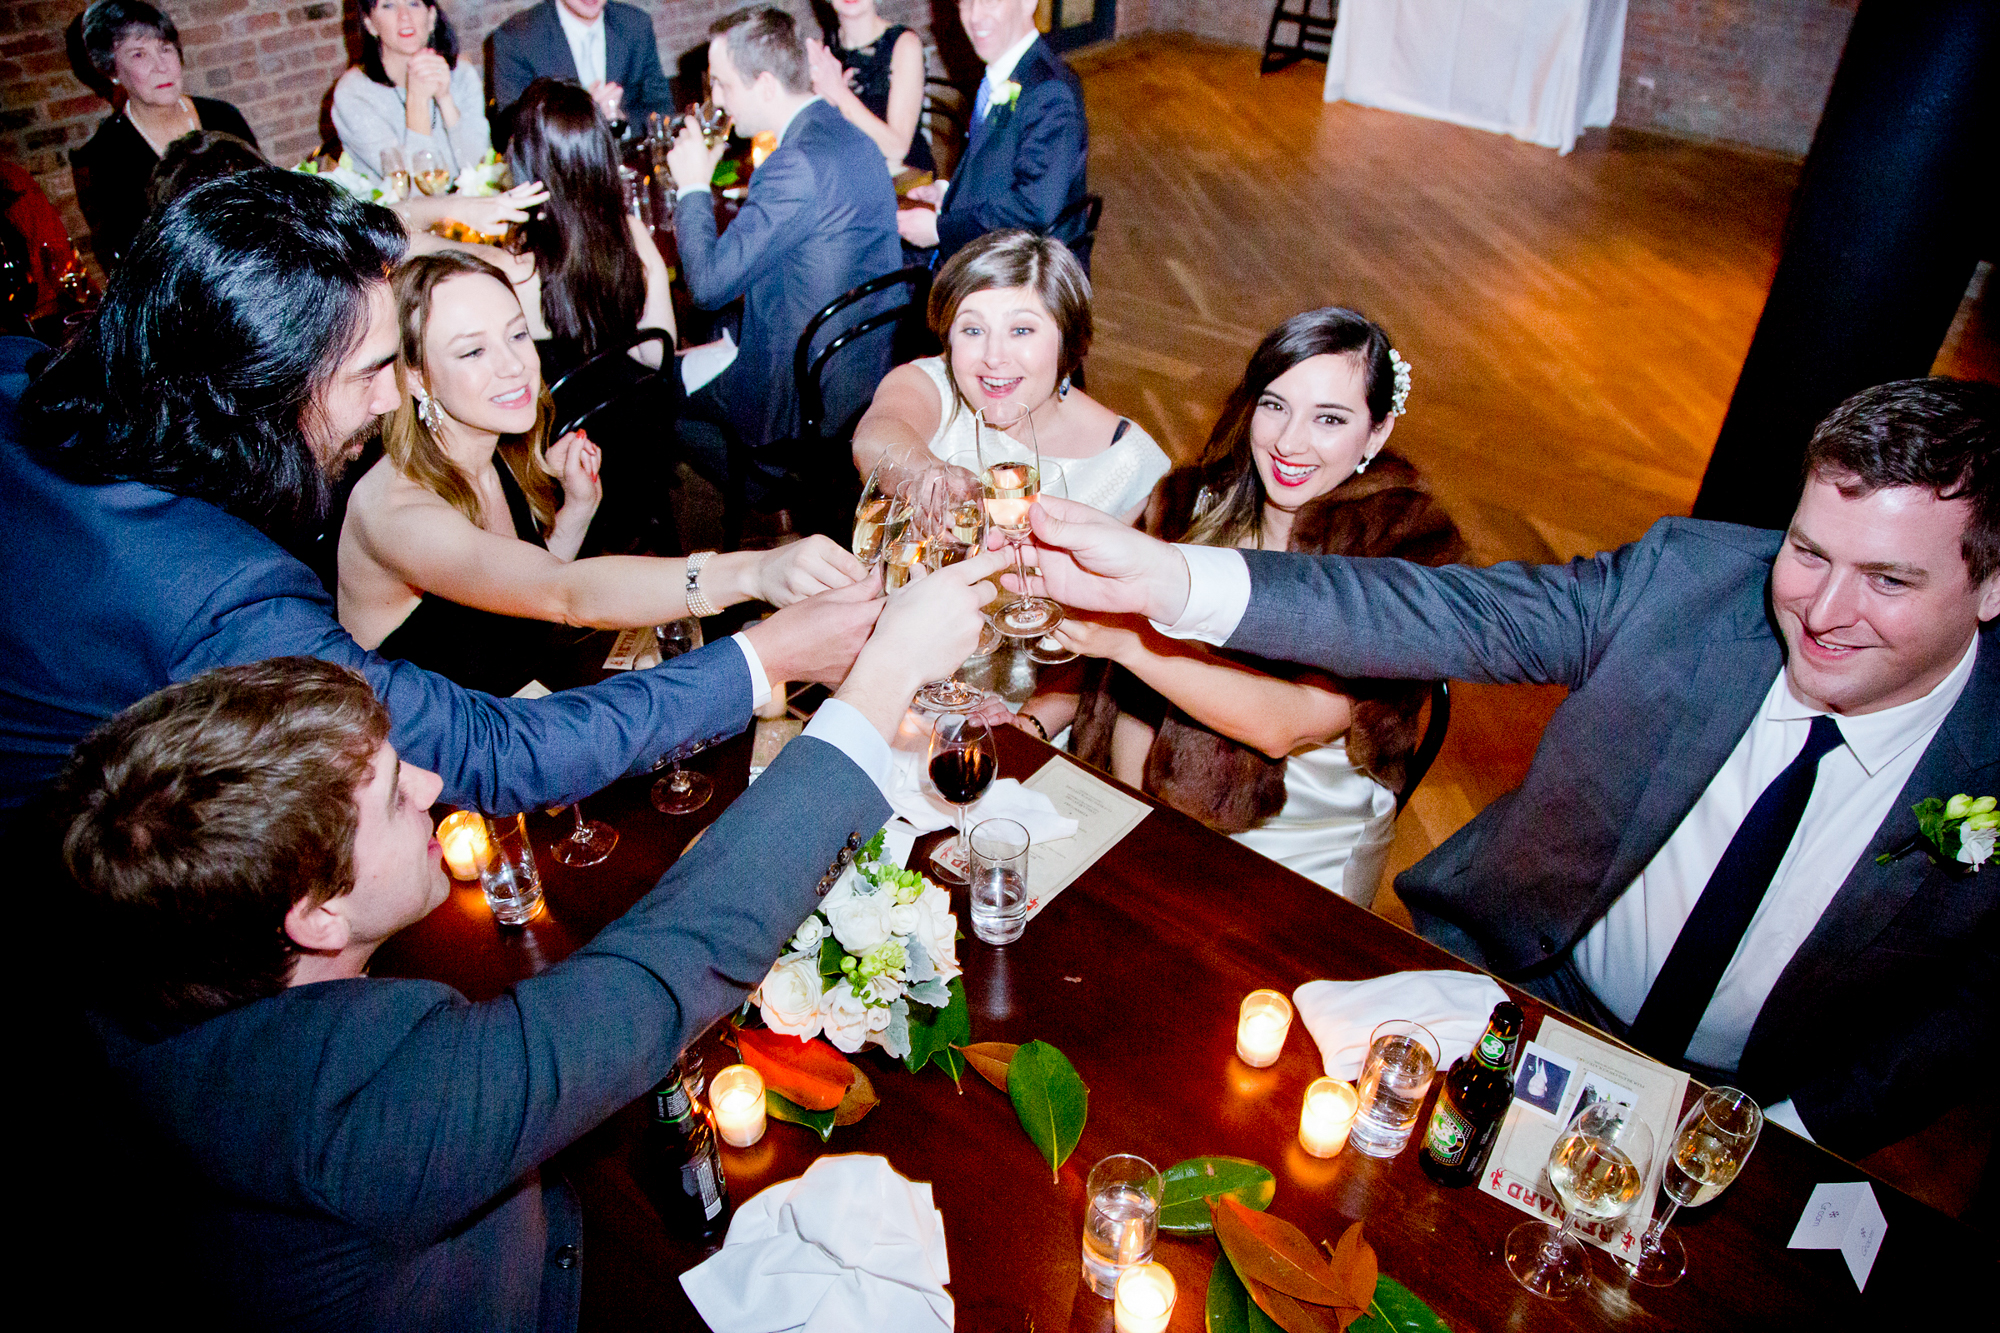 015_CarlyGaebe_SteadfastStudio_WeddingPhotography_NewYorkCity_Brooklyn_WytheHotel_Retro_Cheers_Toast_Champagne_Reception.jpg